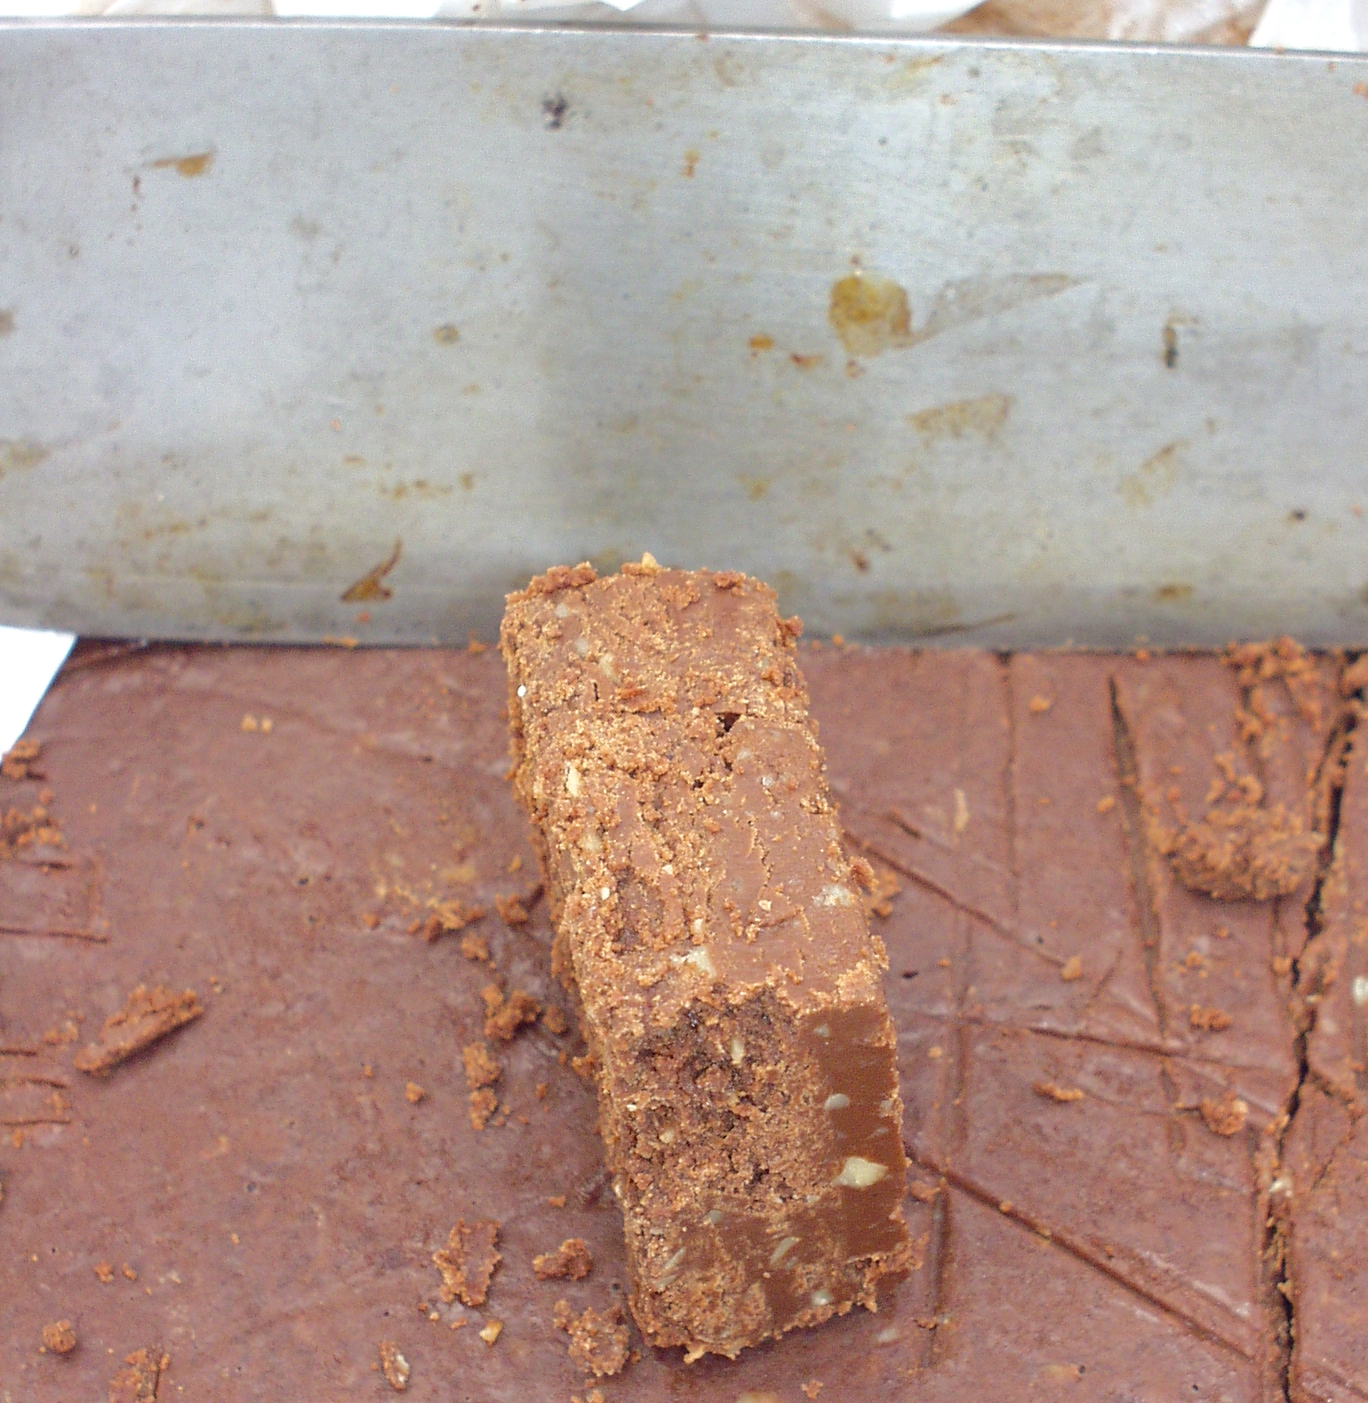 Fudge from Pete's Perfect Butter Toffee. Photo copyright 2009 by Zachary D. Lyons.